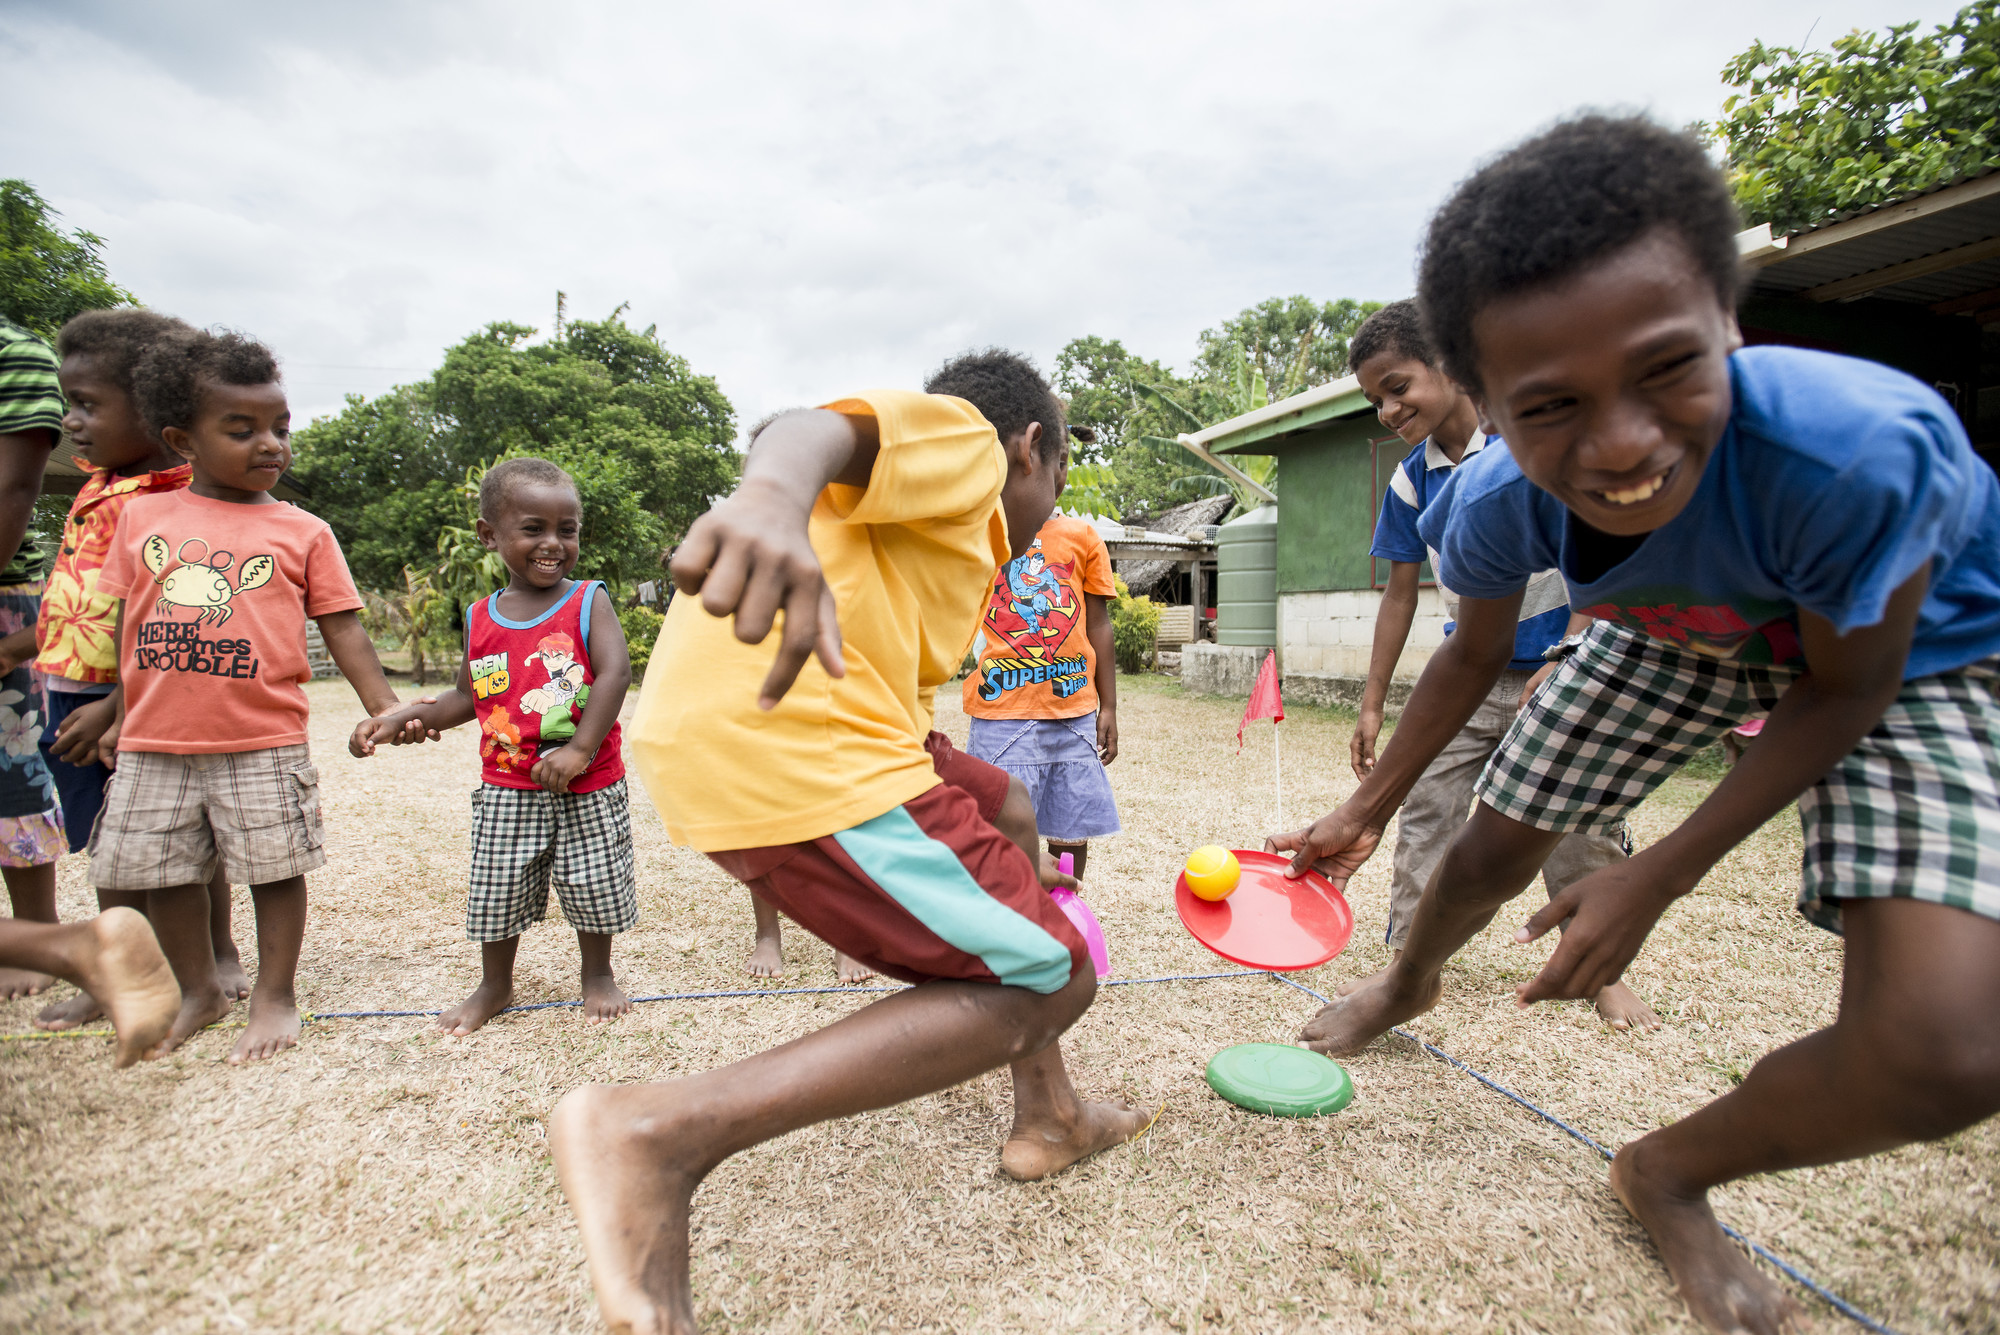 Photo caption: Children play, draw and learn about hand-washing hygiene in Child Friendly Spaces set up by Save the Children. Photo credit: Save the Children.